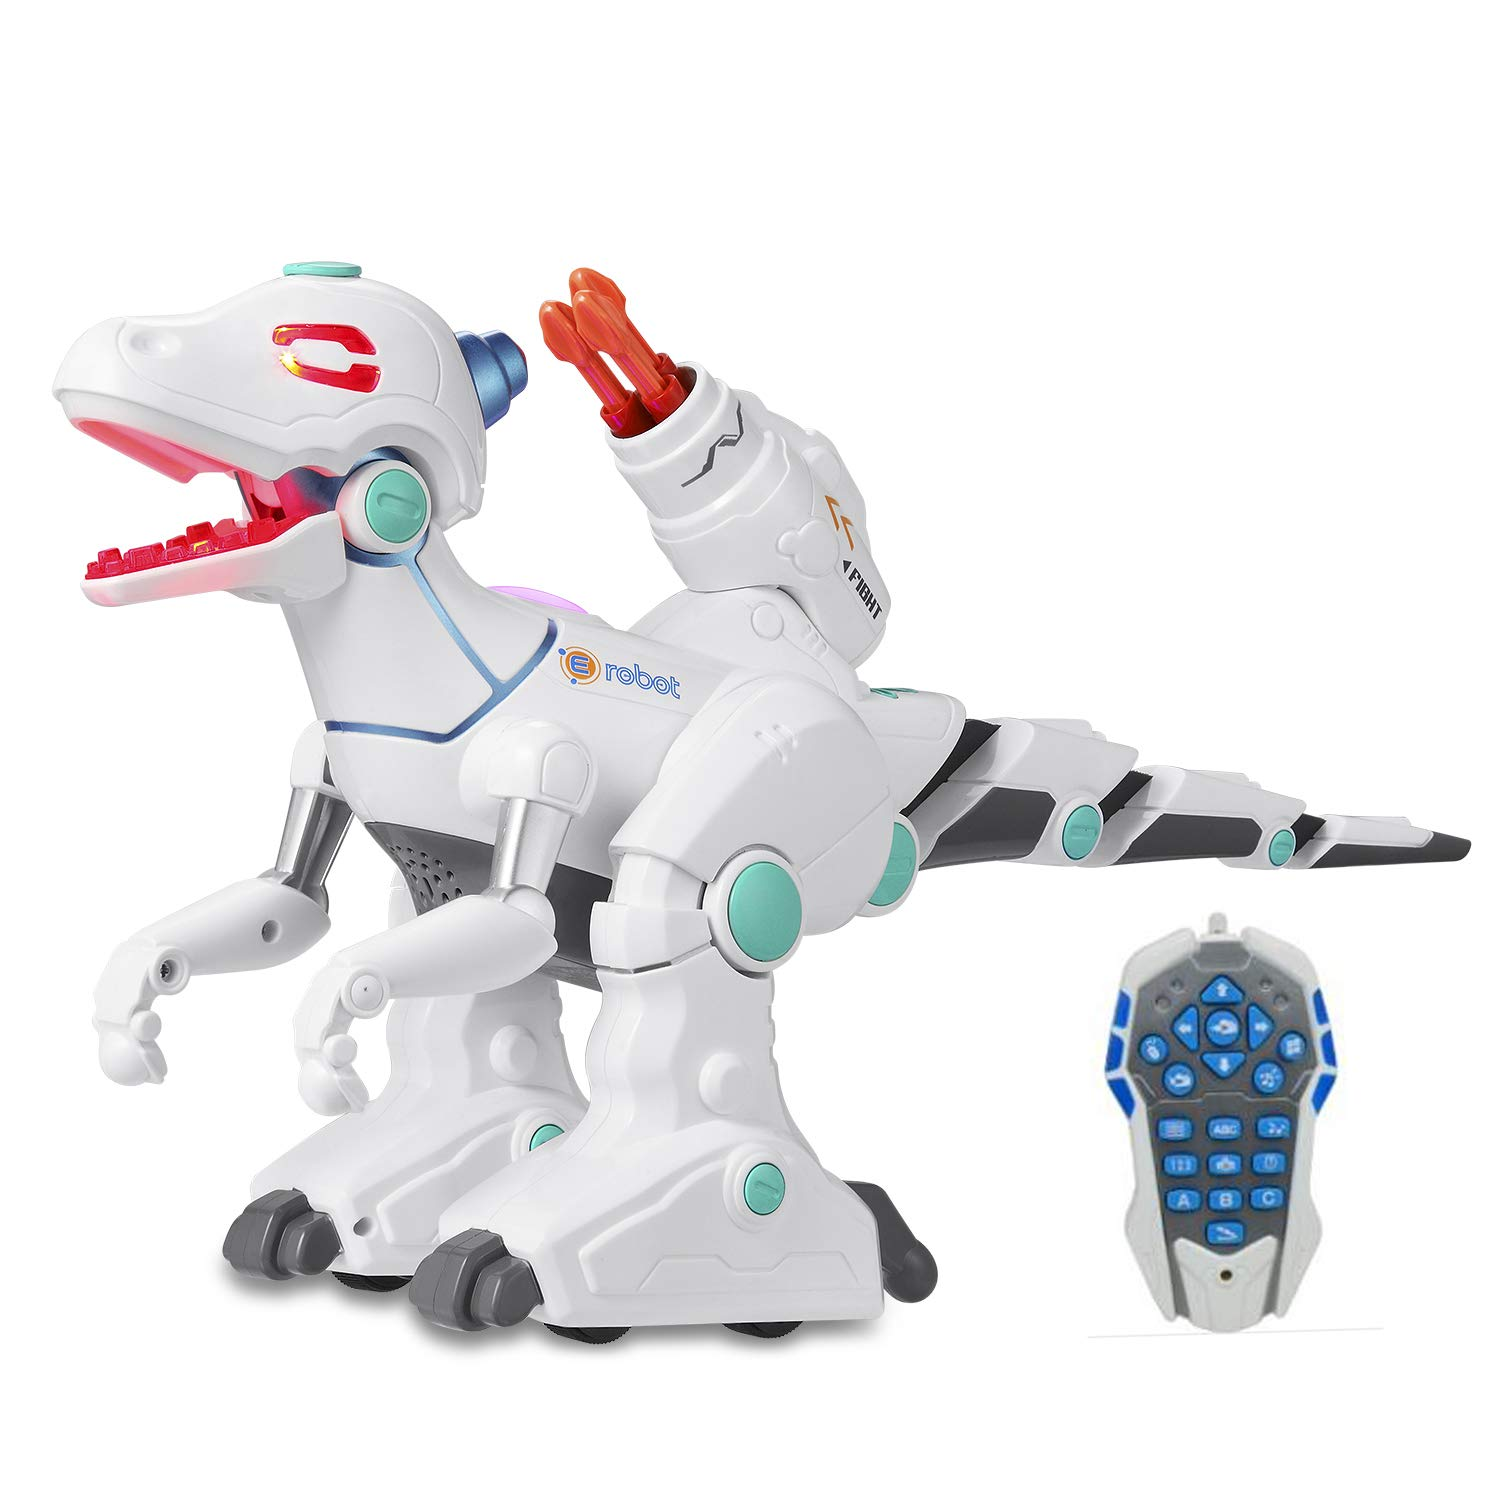 Haite Remote Control Robot Dinosaur, Dinosaur Toys for Kids, Dino Action, Sprays, Fight, Shooting, Live Sound, Rechargeable Intelligent Electronic Pet for Boys/Girls by Haite (Image #1)